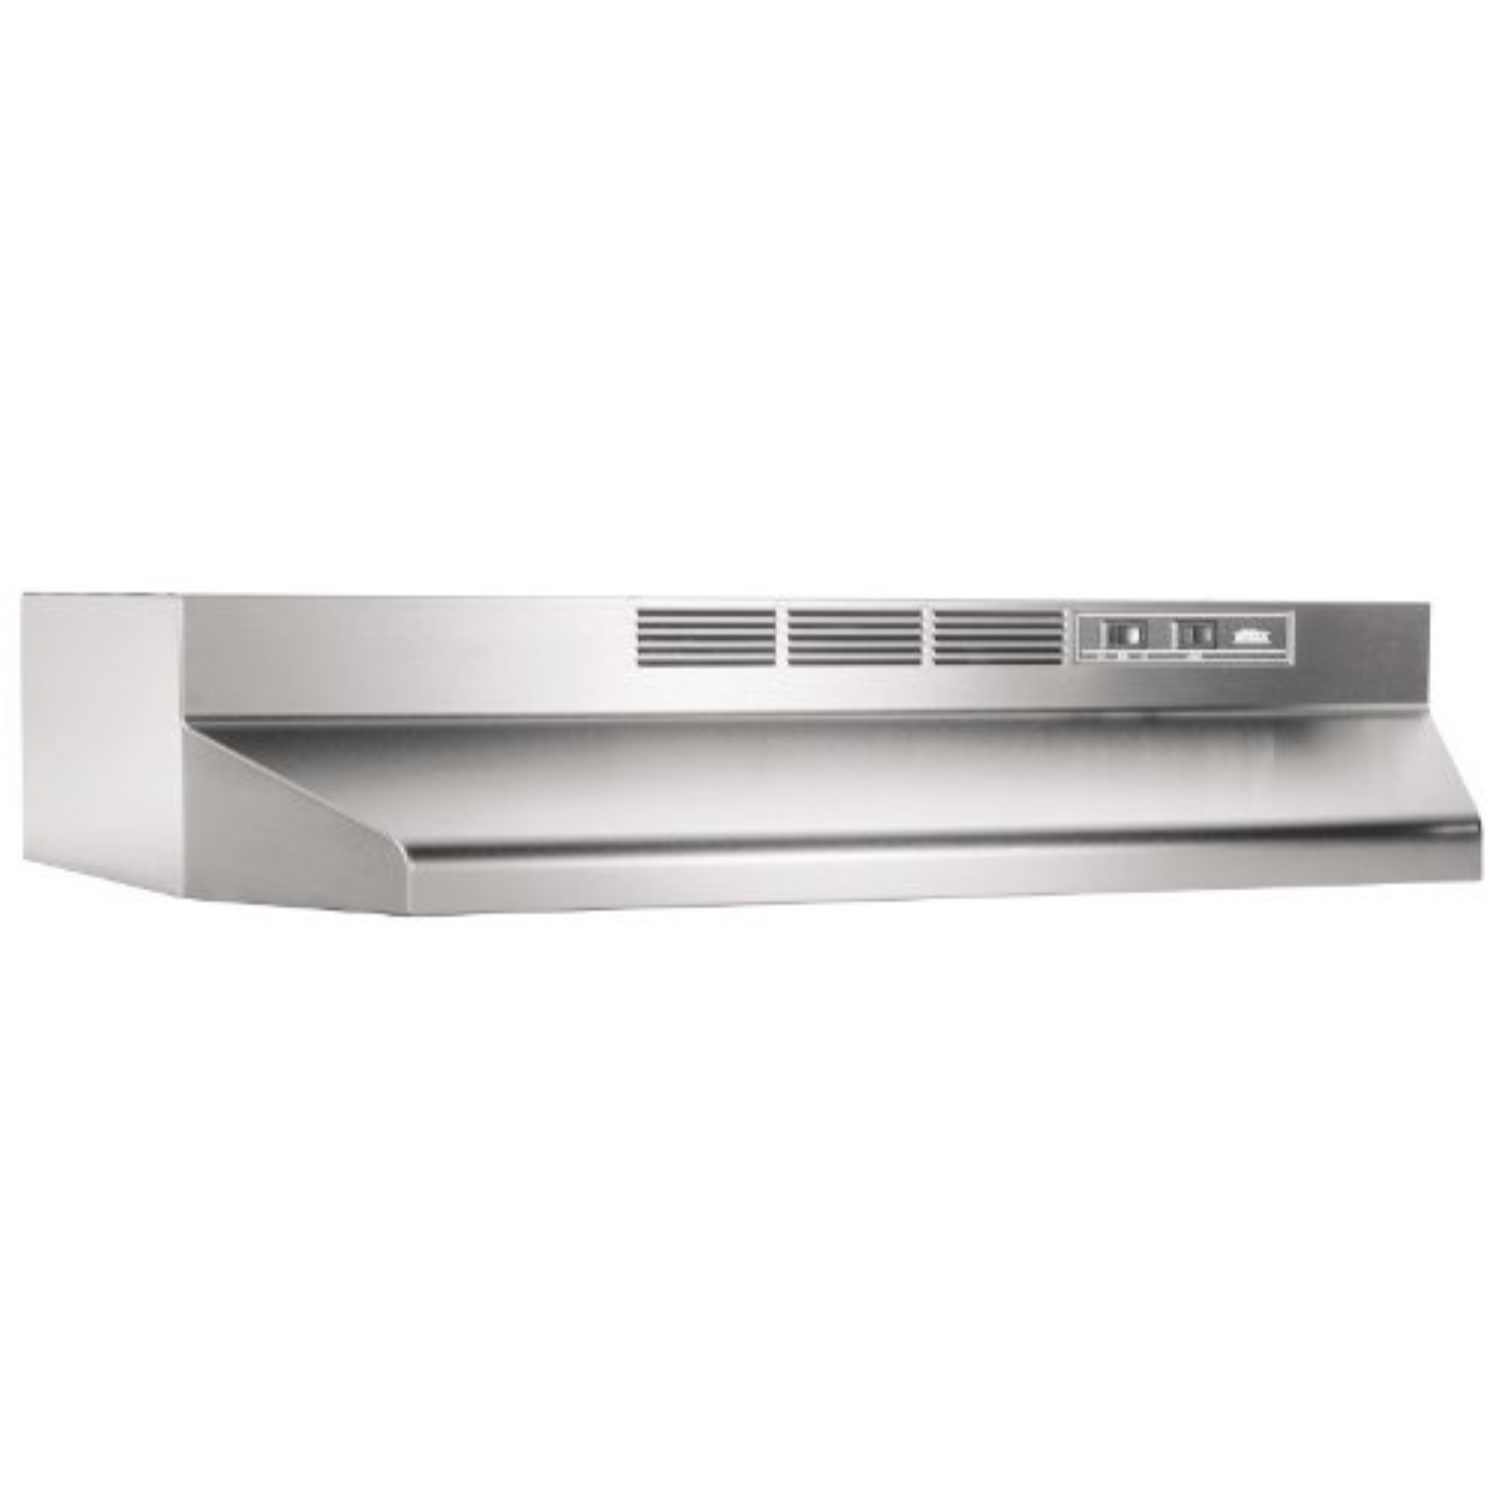 broan nutone 413004 stainless steel ductless range hood insert with light exhaust fan for under cabinet 30 inch walmart com